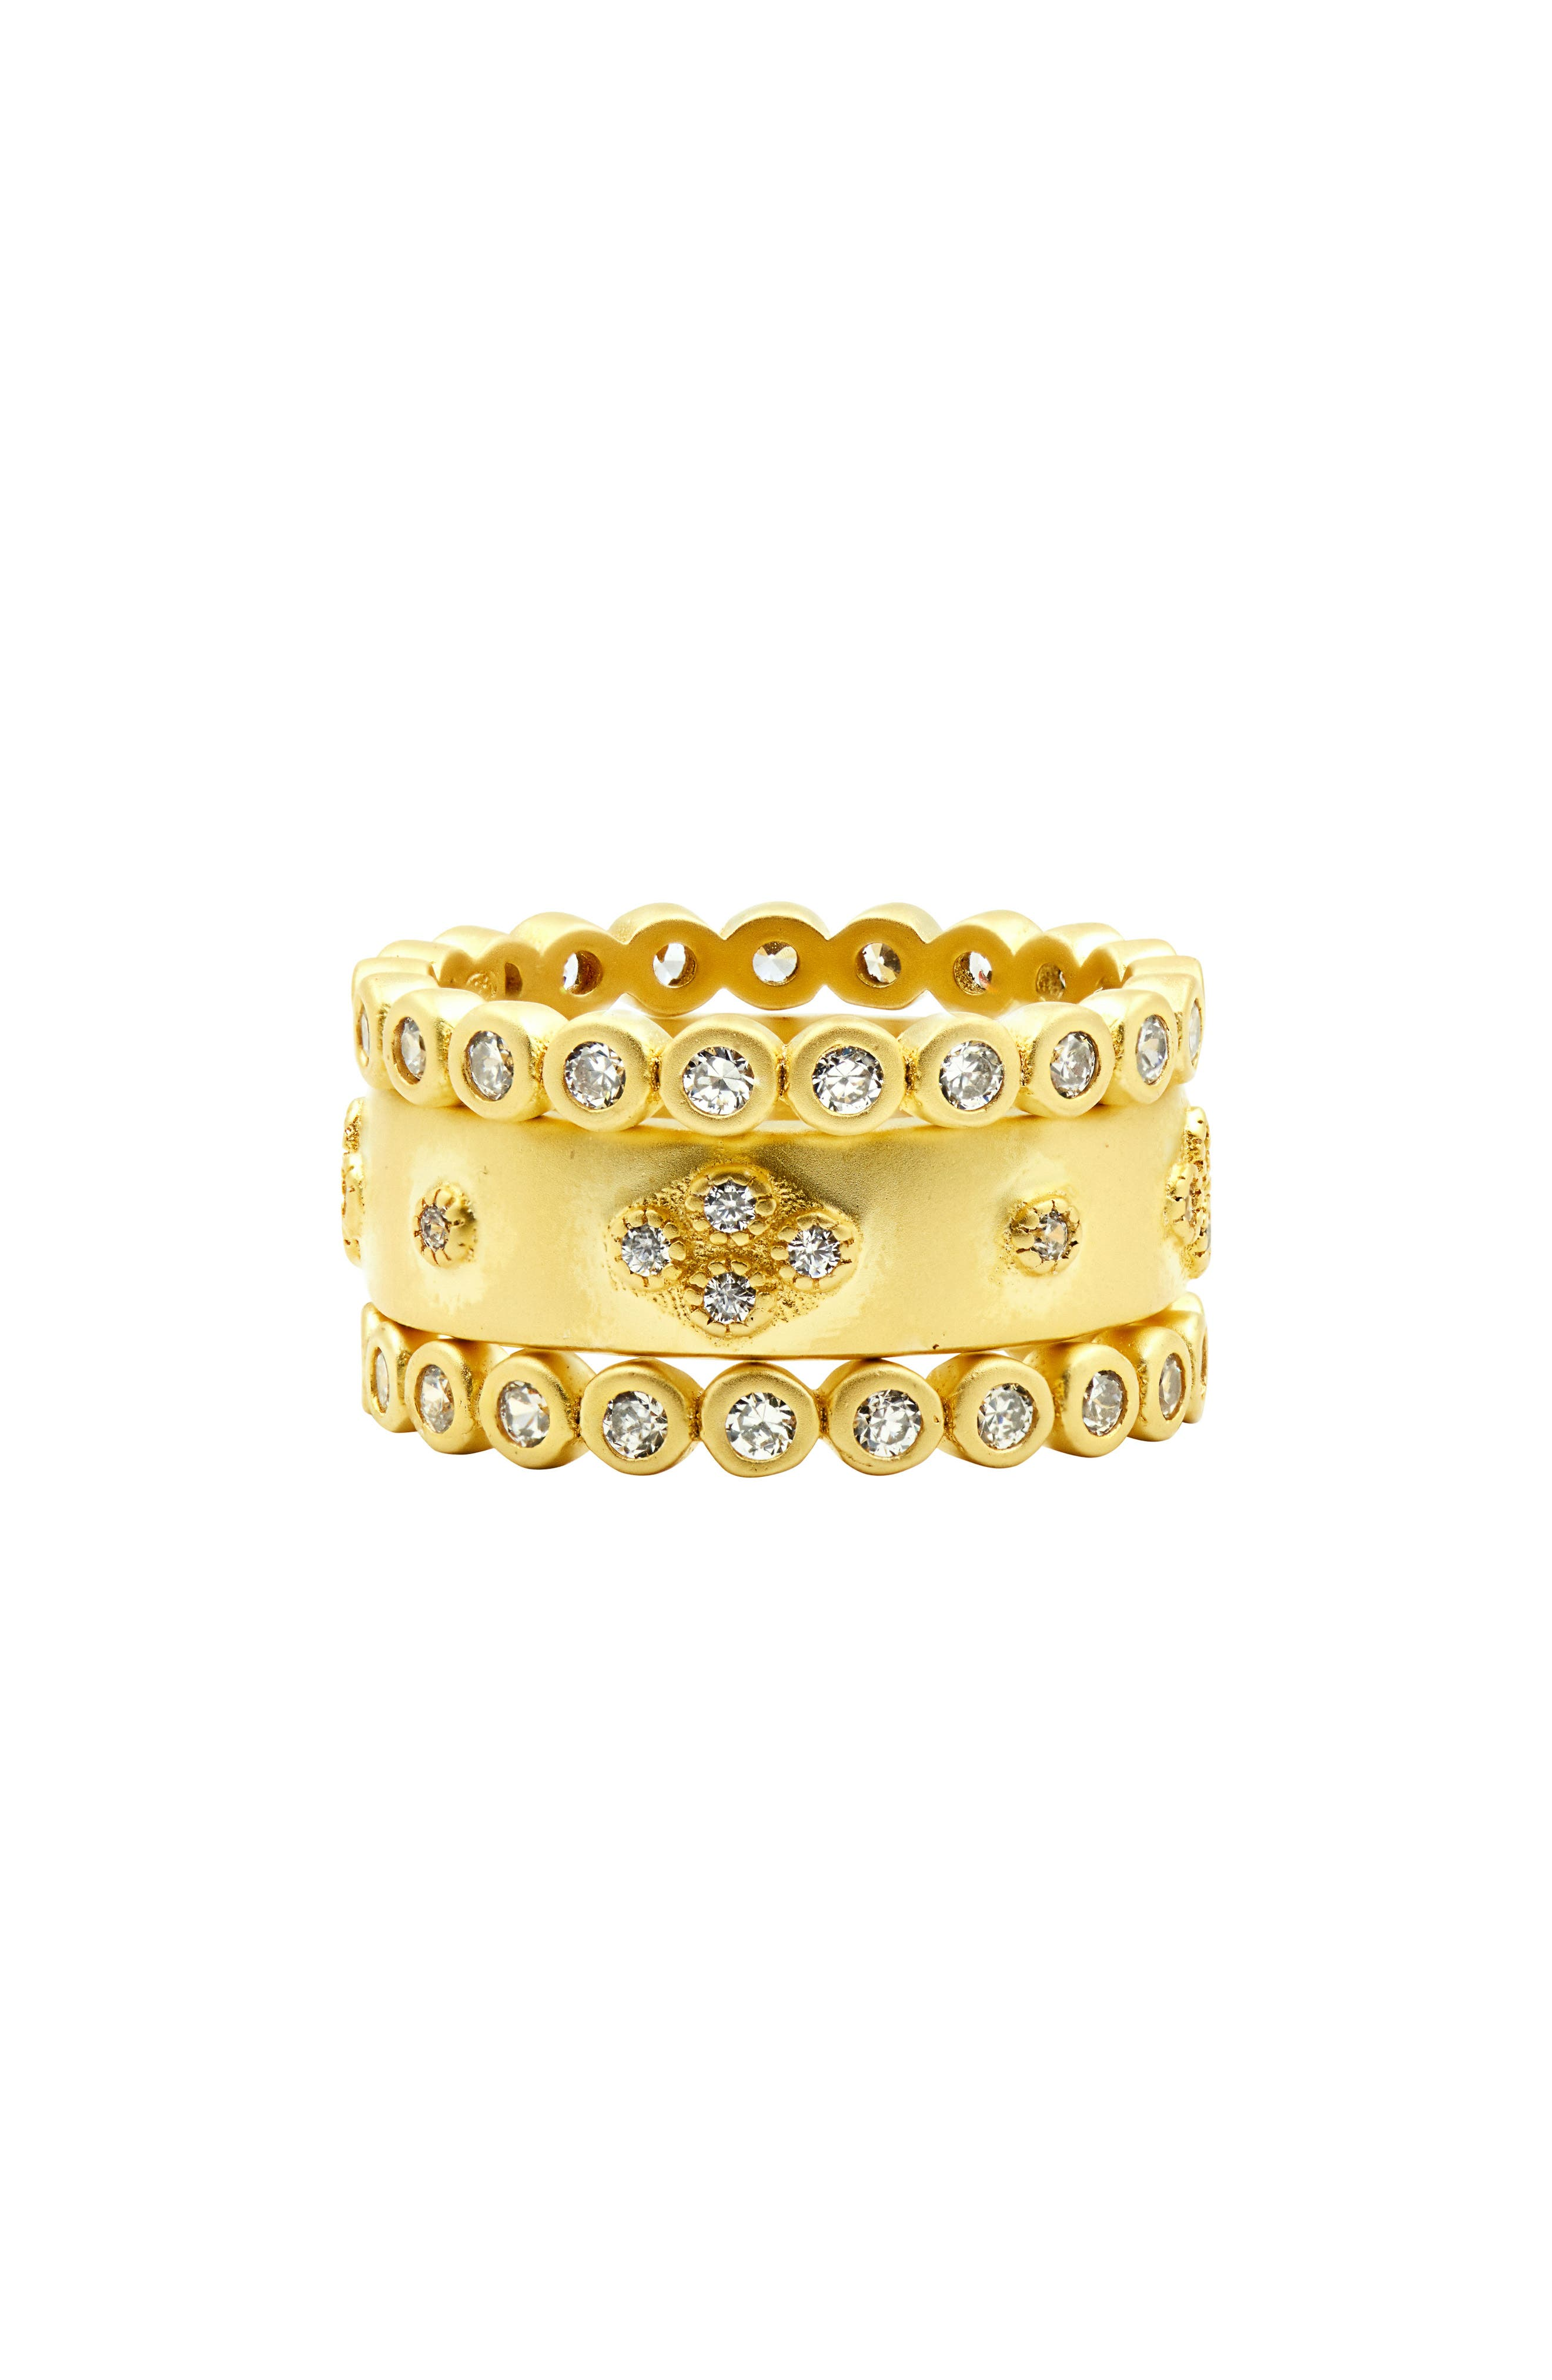 Audrey Set of 3 Cubic Zirconia Stacking Rings,                             Main thumbnail 1, color,                             Gold/ Clear